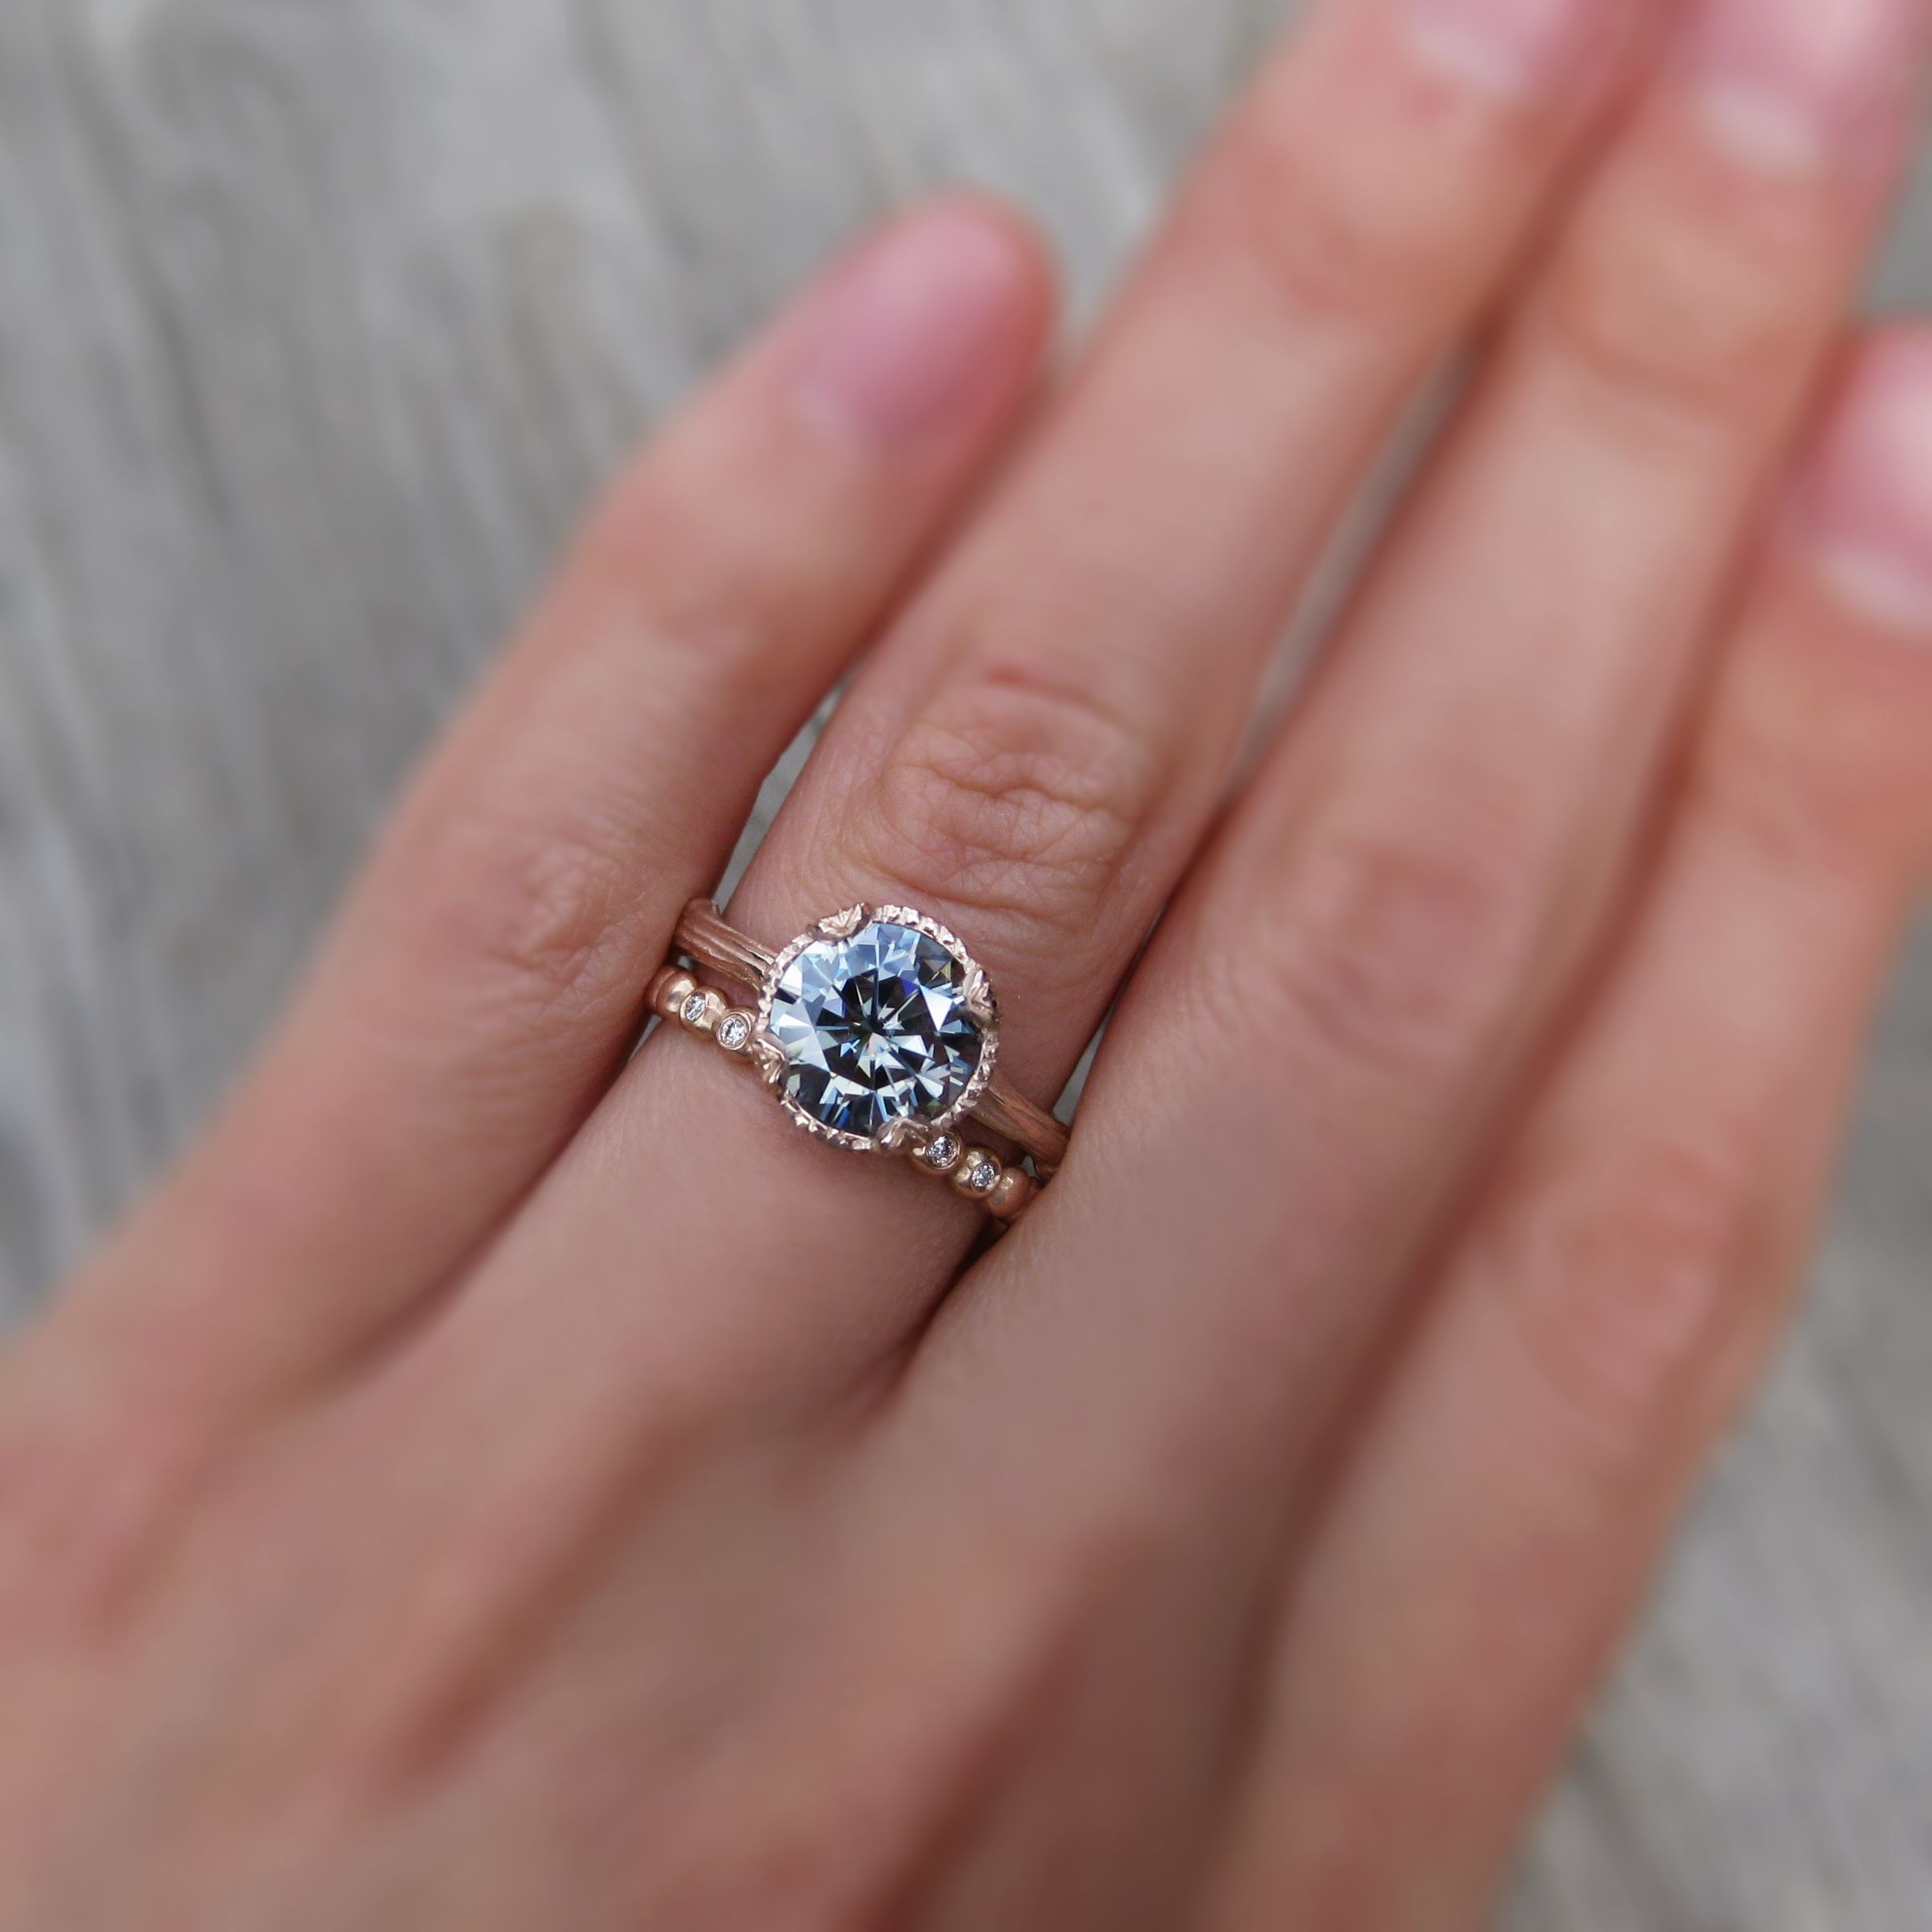 Grey Moissanite Twig Engagement Ring in rose gold By Kristin